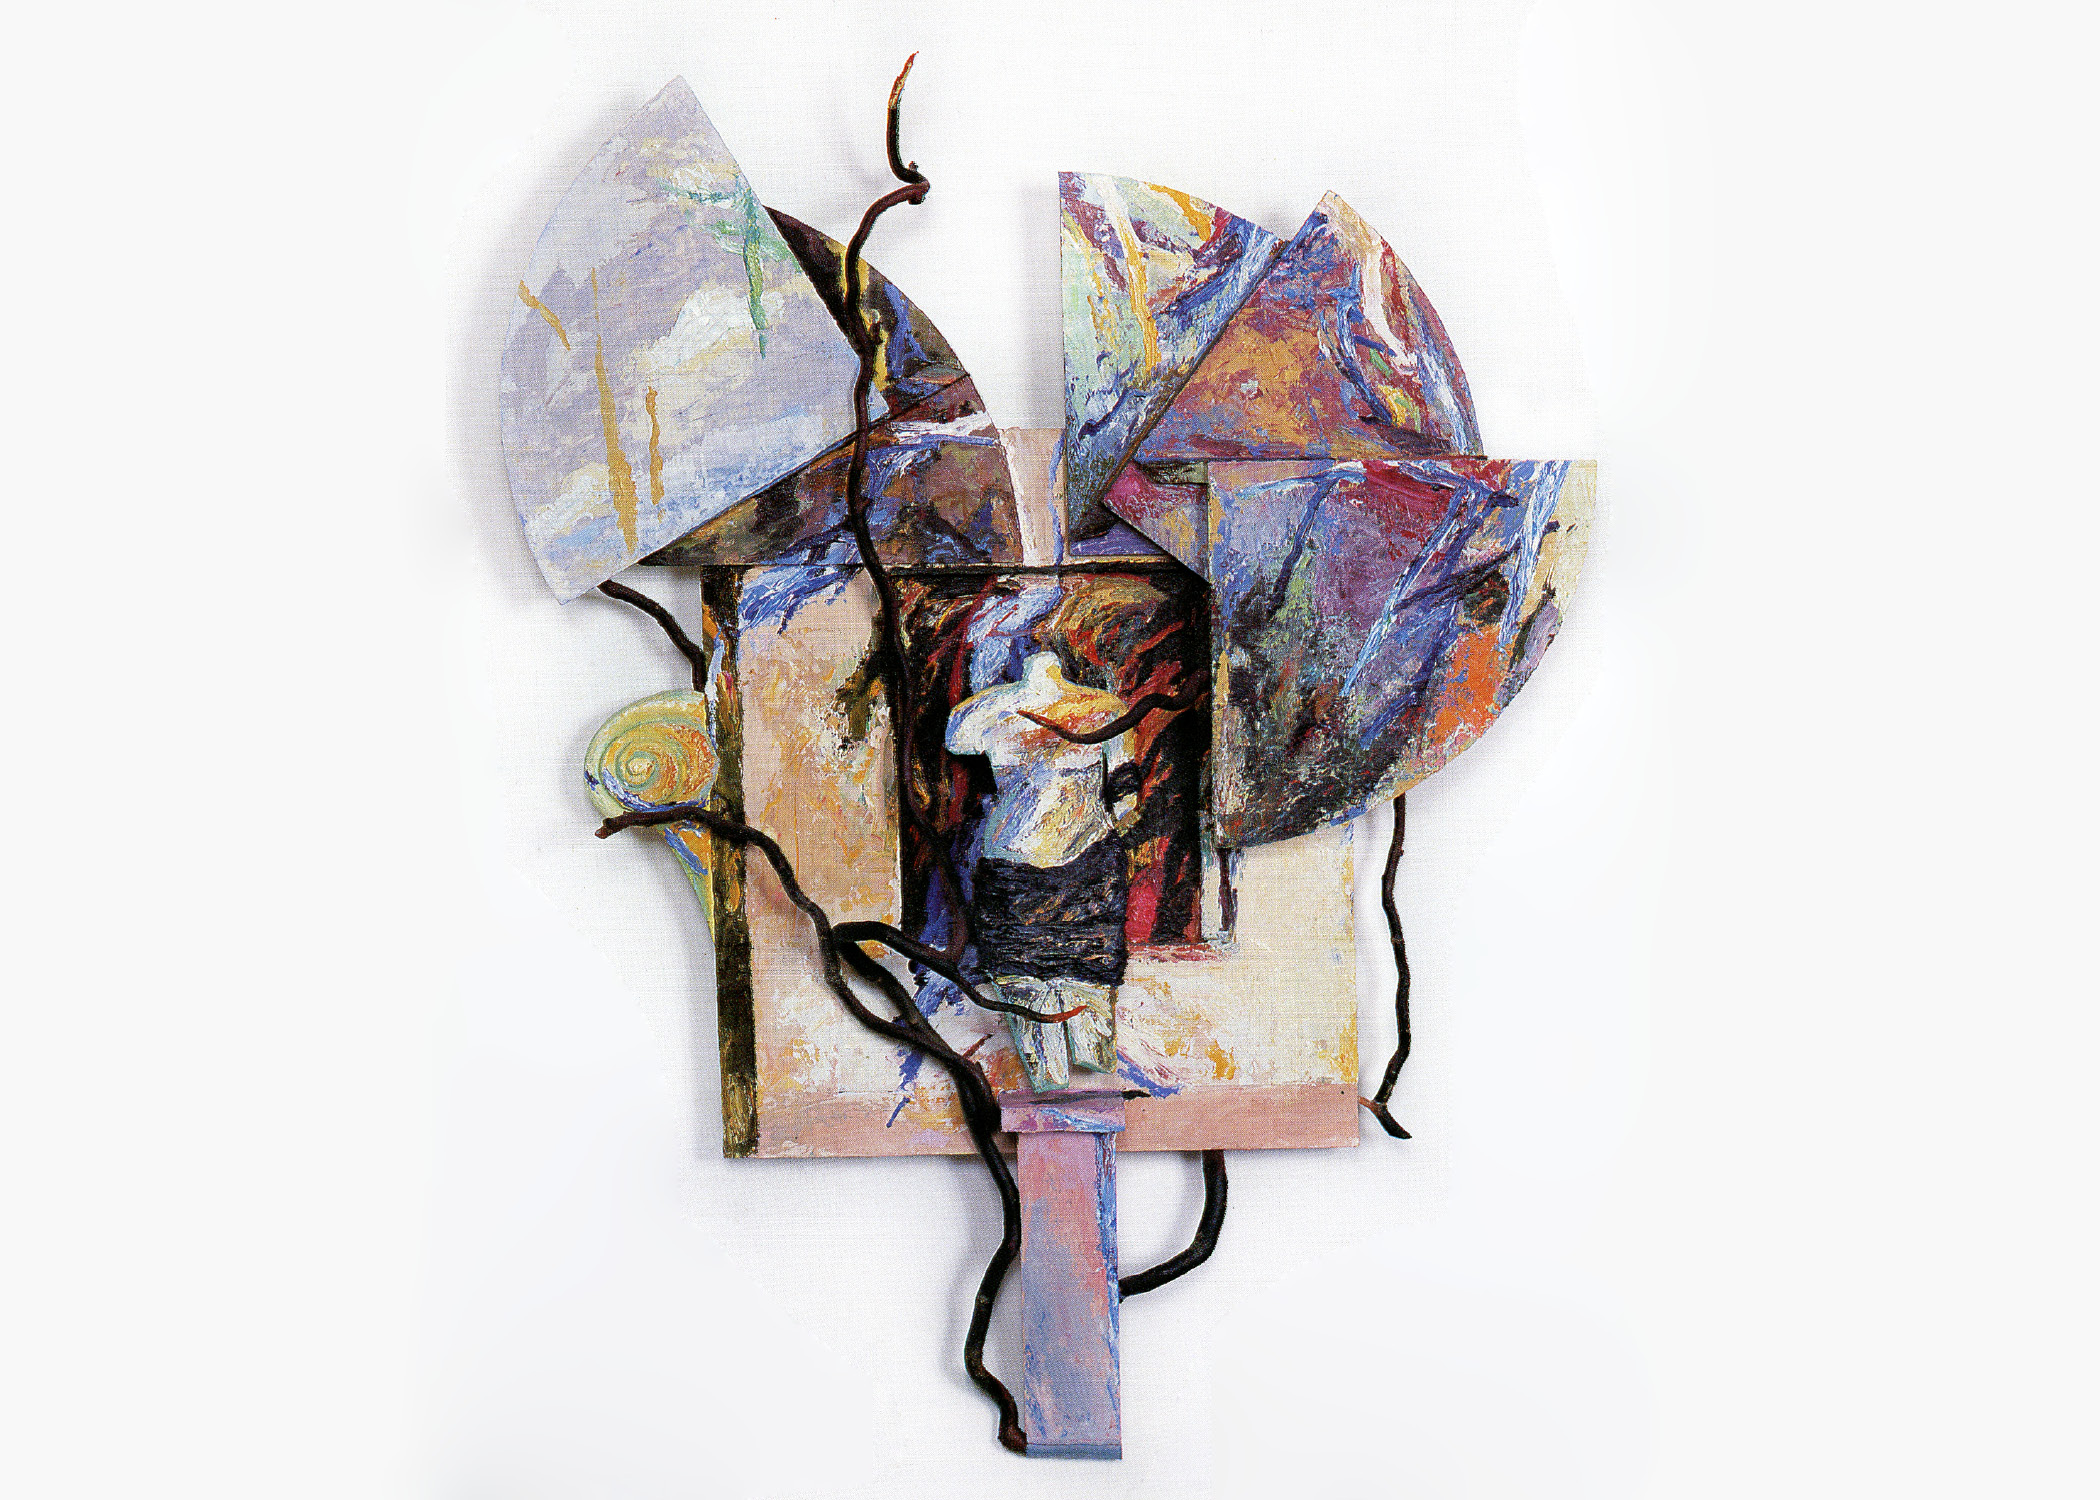 Keith Mitchell,  Entangled Garden , 1986, mixed media, oil paint, wood panel, arbutus branches, L 44 x H 33 x W 5.5 inches.Private collection.